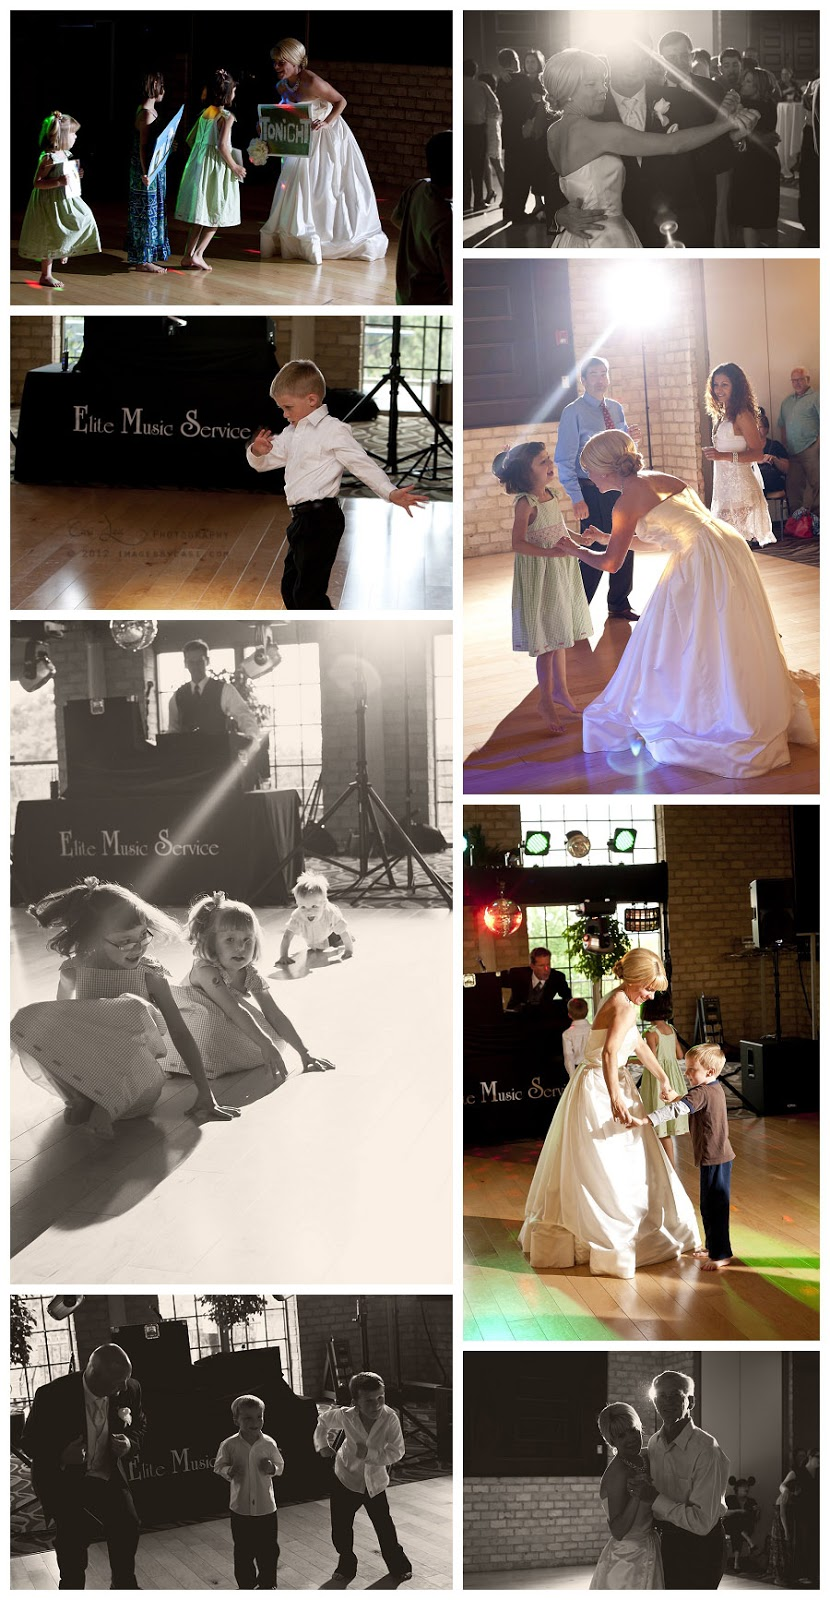 Music by Elite Music Service, photos by green bay wedding photographer Casi Lea Photography